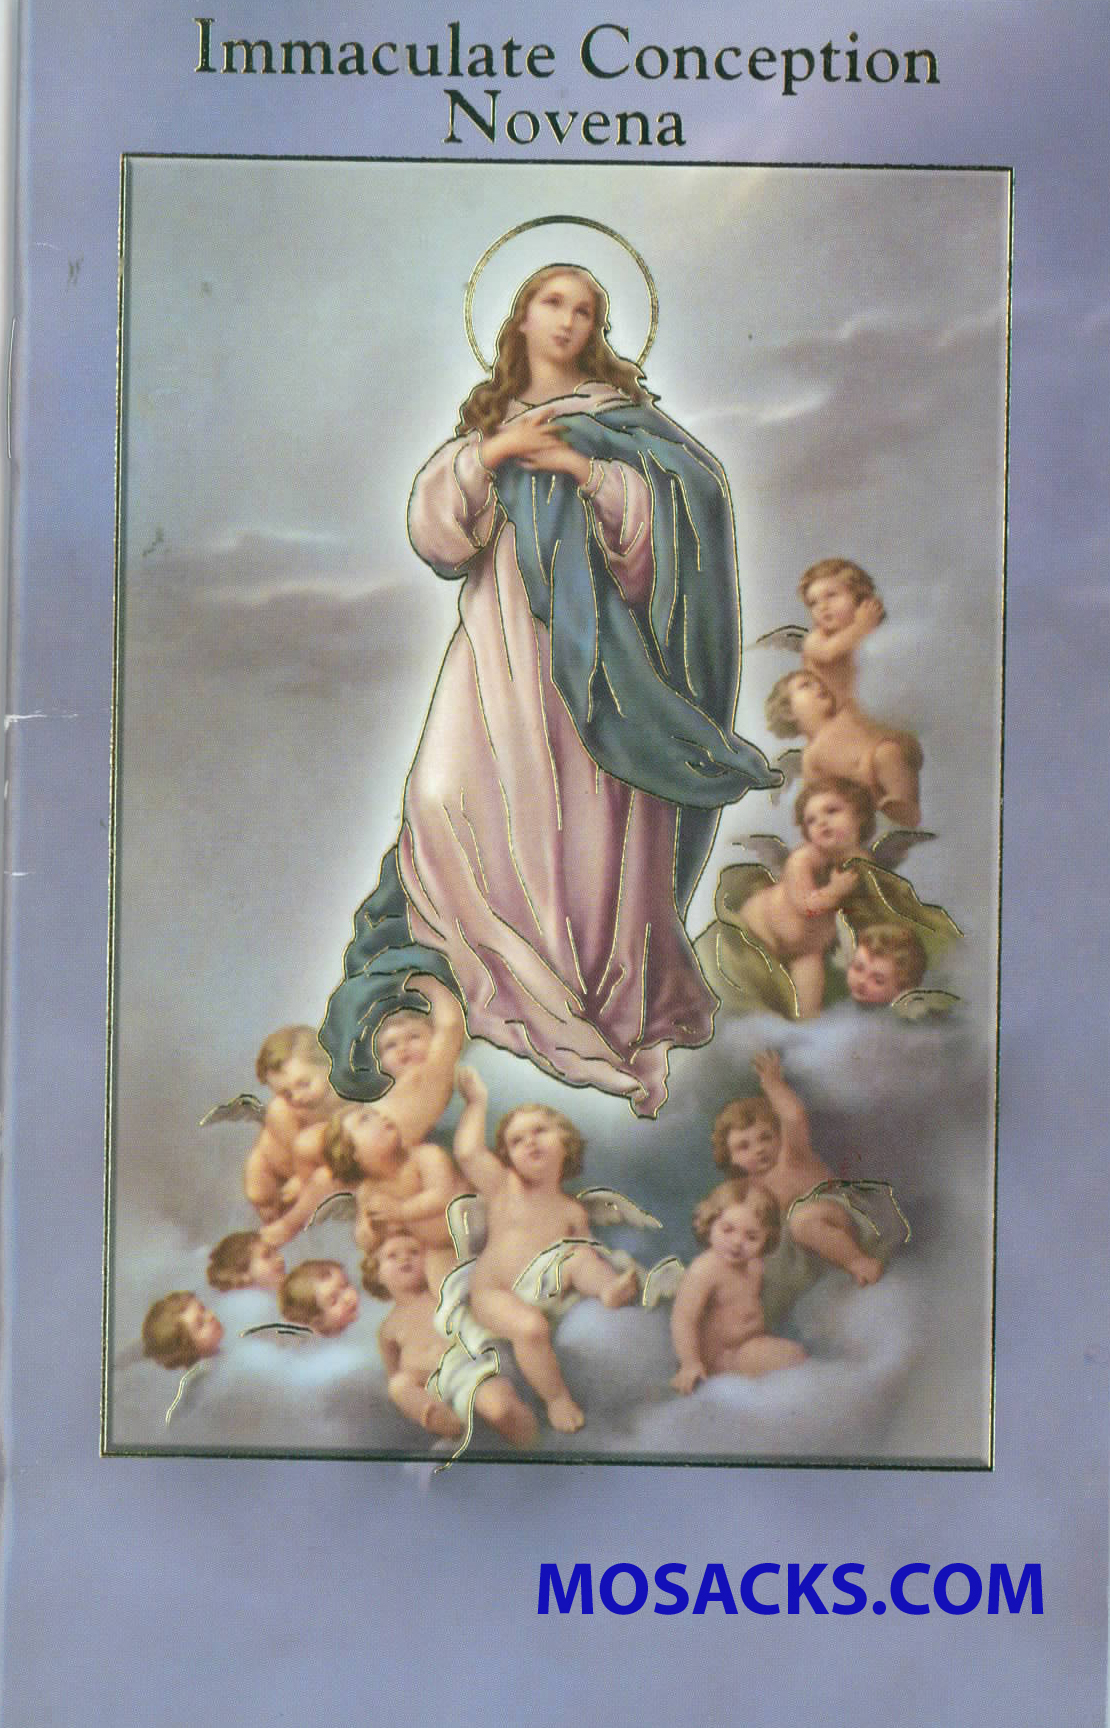 Immaculate Conception Novena Prayer Book with Prayers 12-2432-251